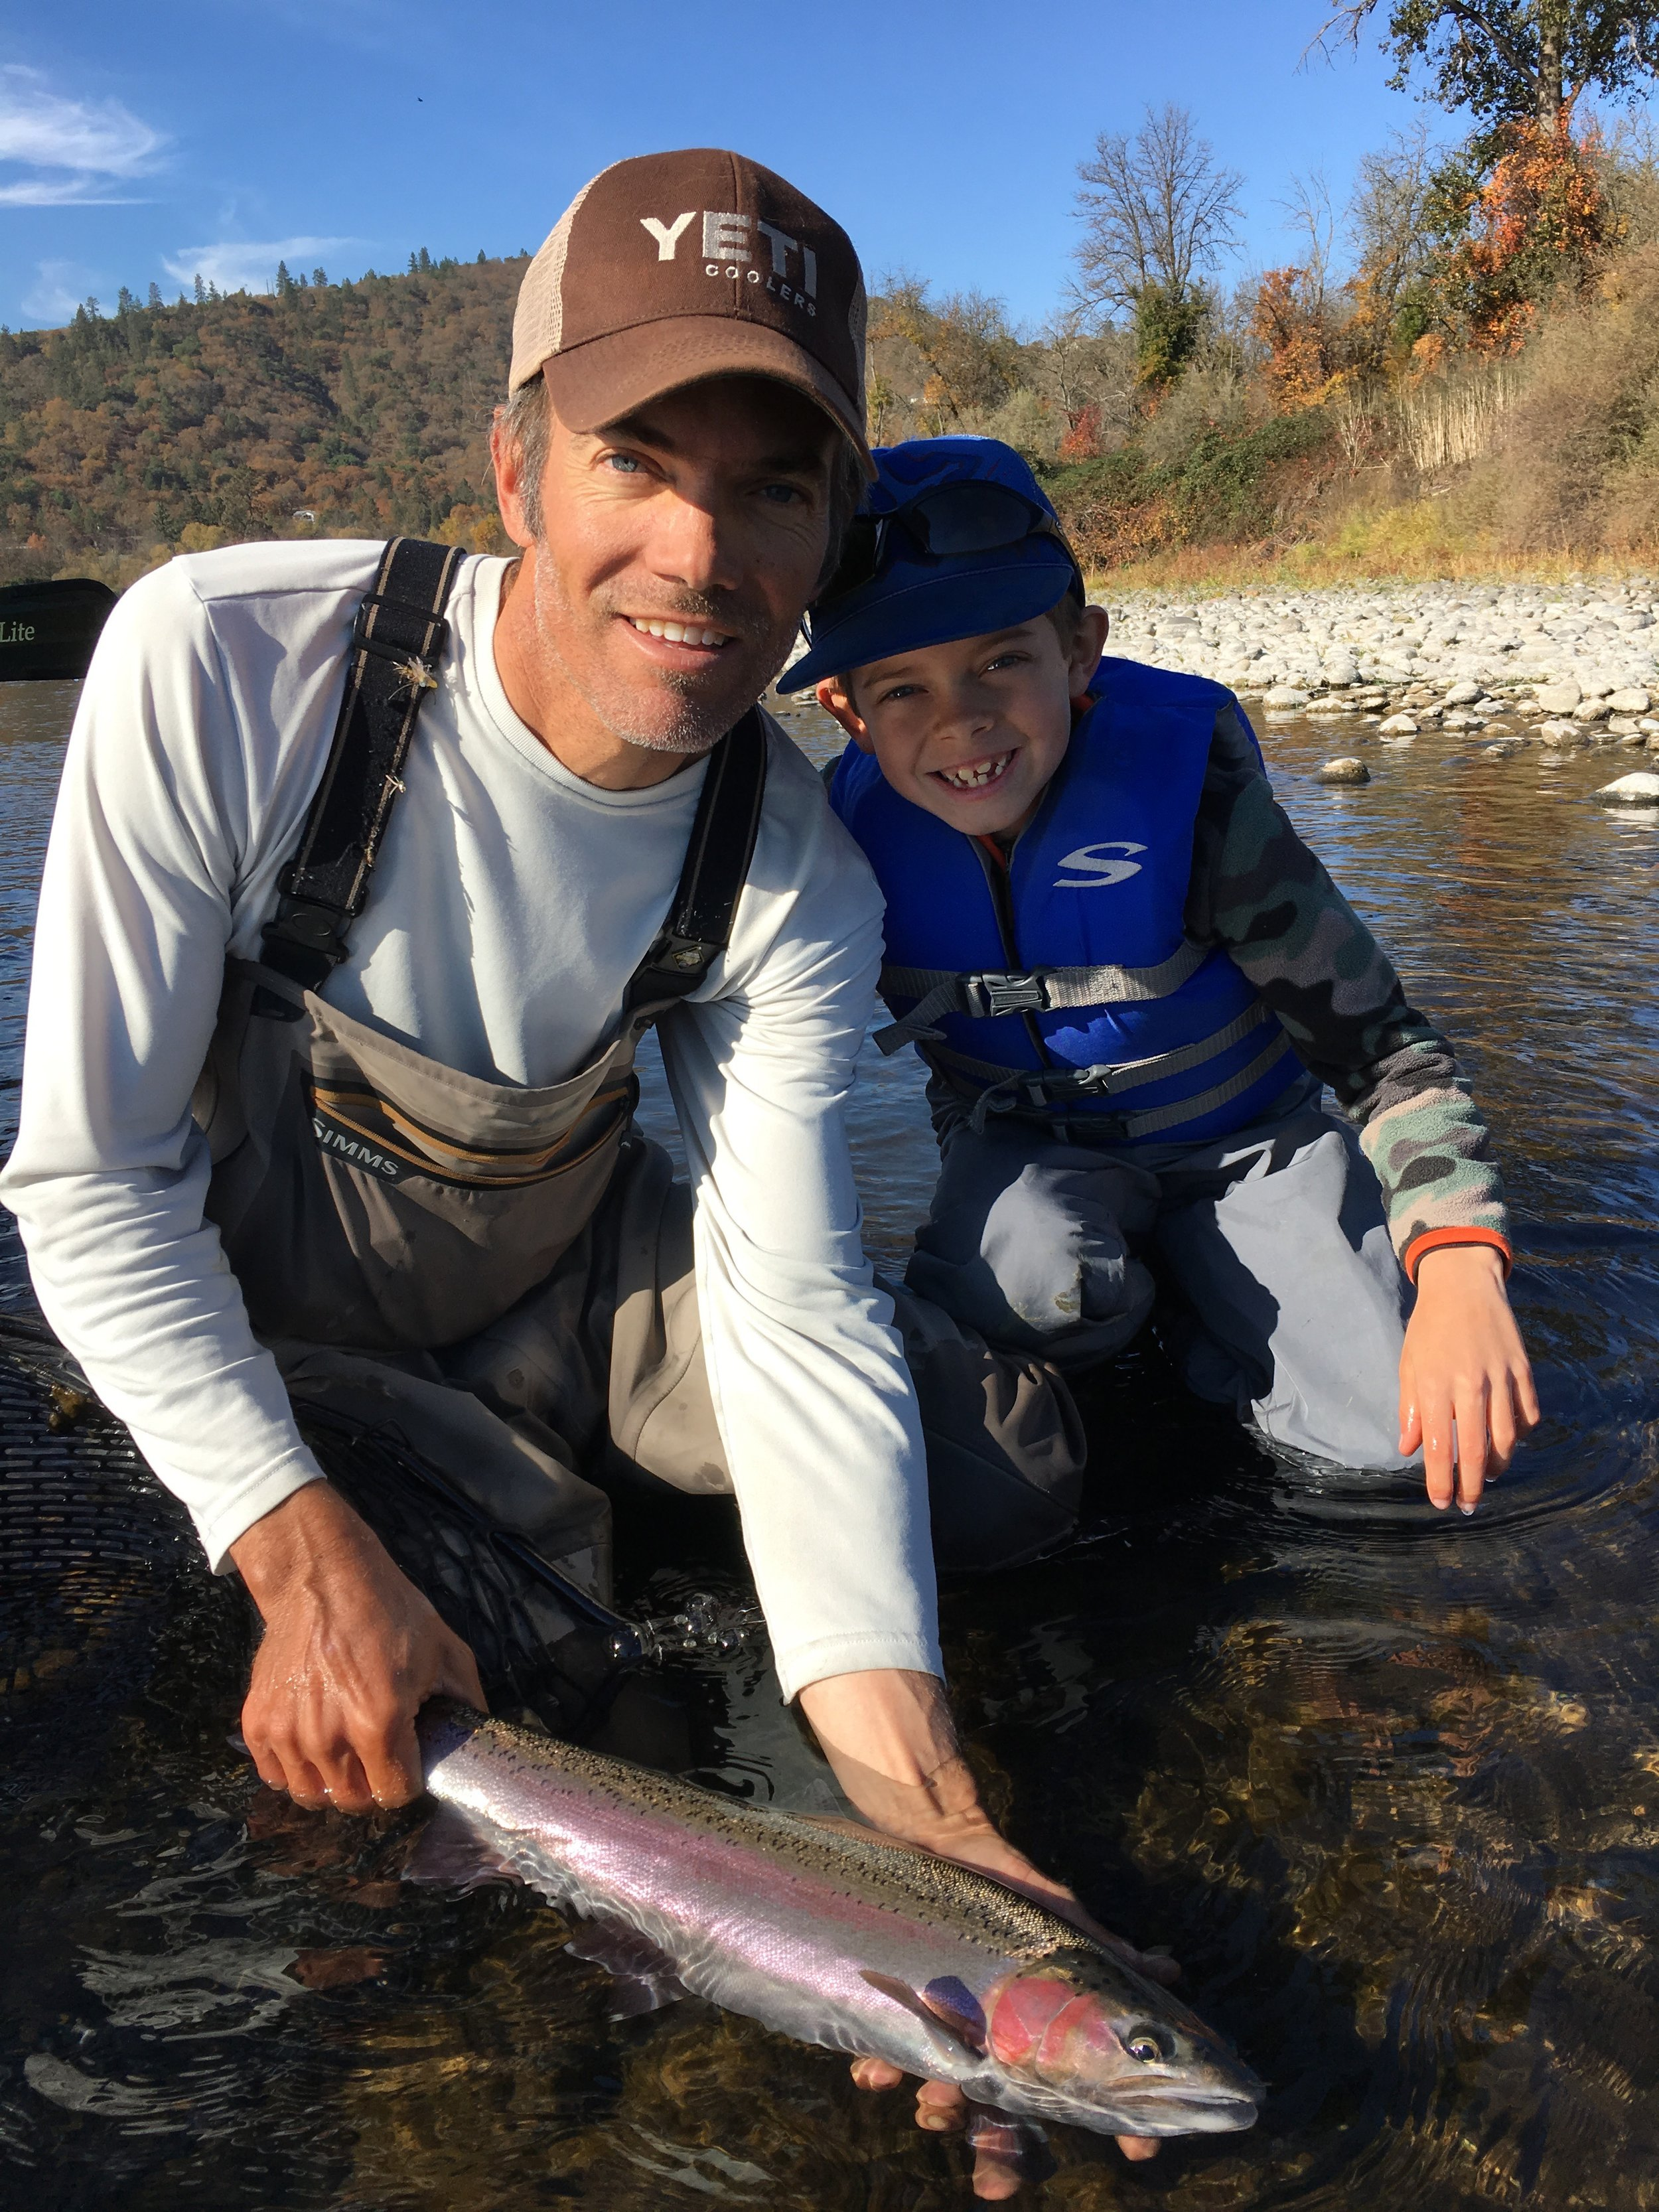 Jim Andras, Fly Fishing Guide, and son with nice Rogue River steelhead